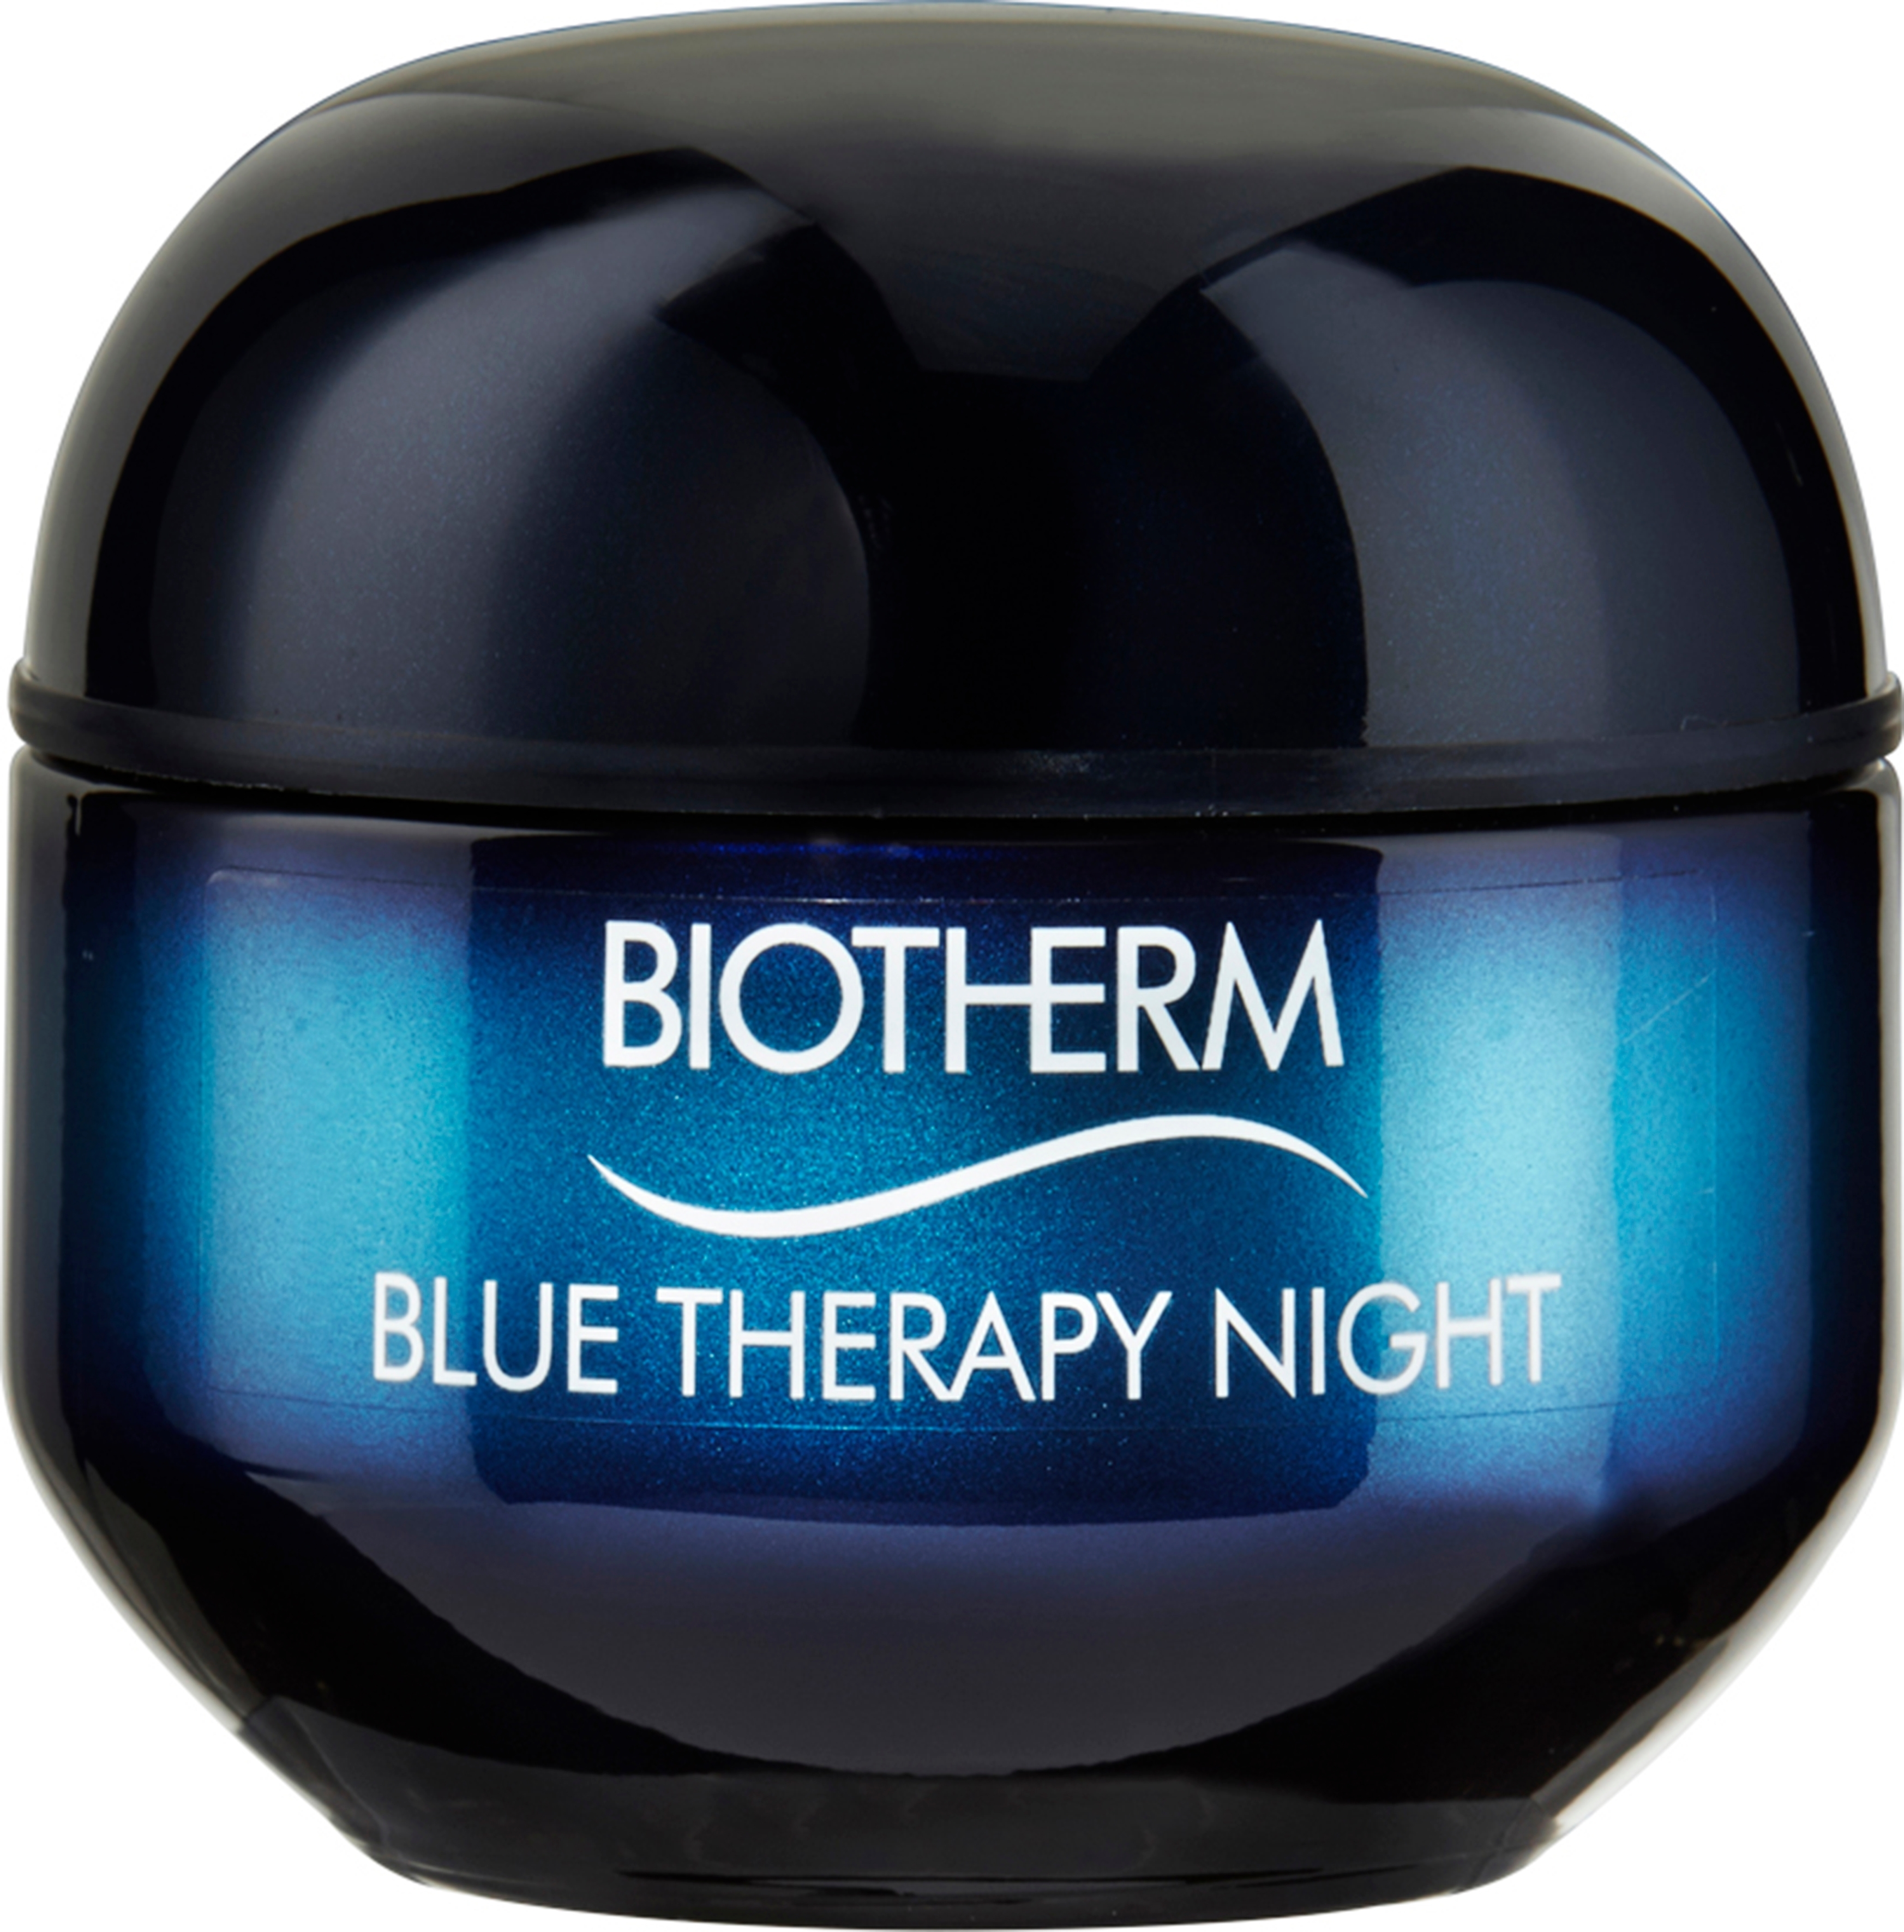 BIOTHERM nachtcrème Blue Therapy Night Cream Anti-aging online kopen op otto.nl